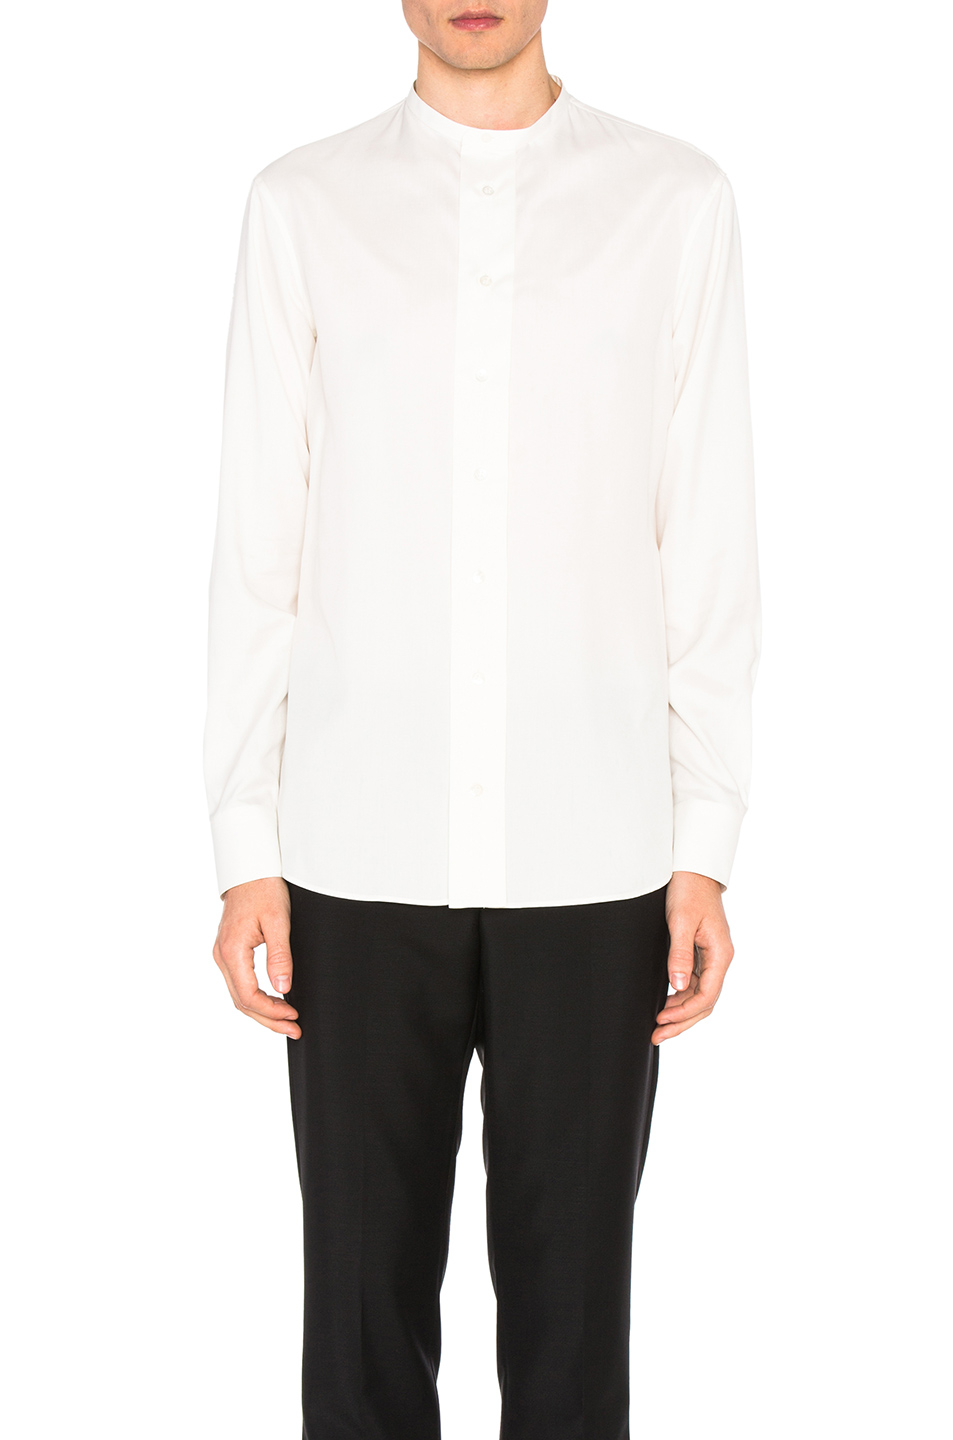 Alexander McQueen Collarless Silk Shirt in White